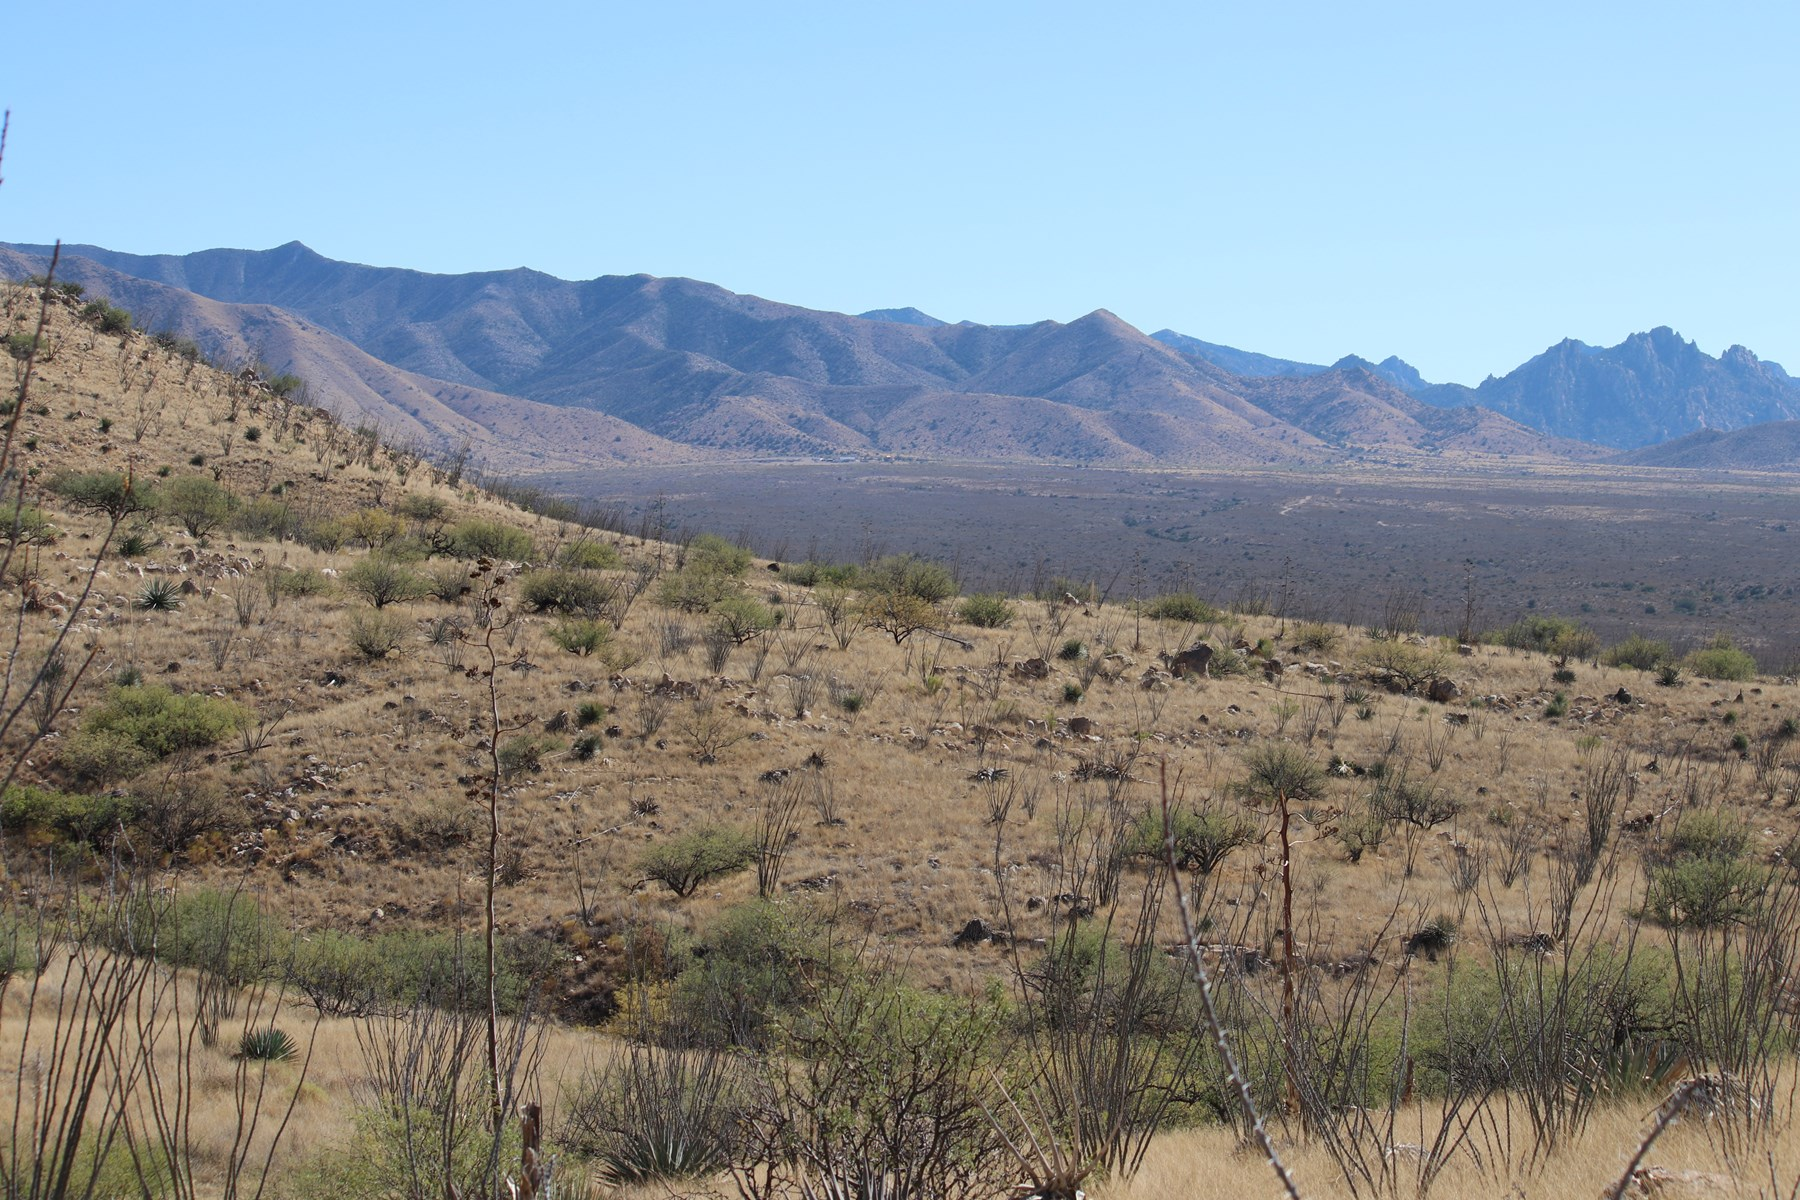 200 ACRES on the WESTERN SLOPE OF THE AZ DRAGOON MOUNTAINS